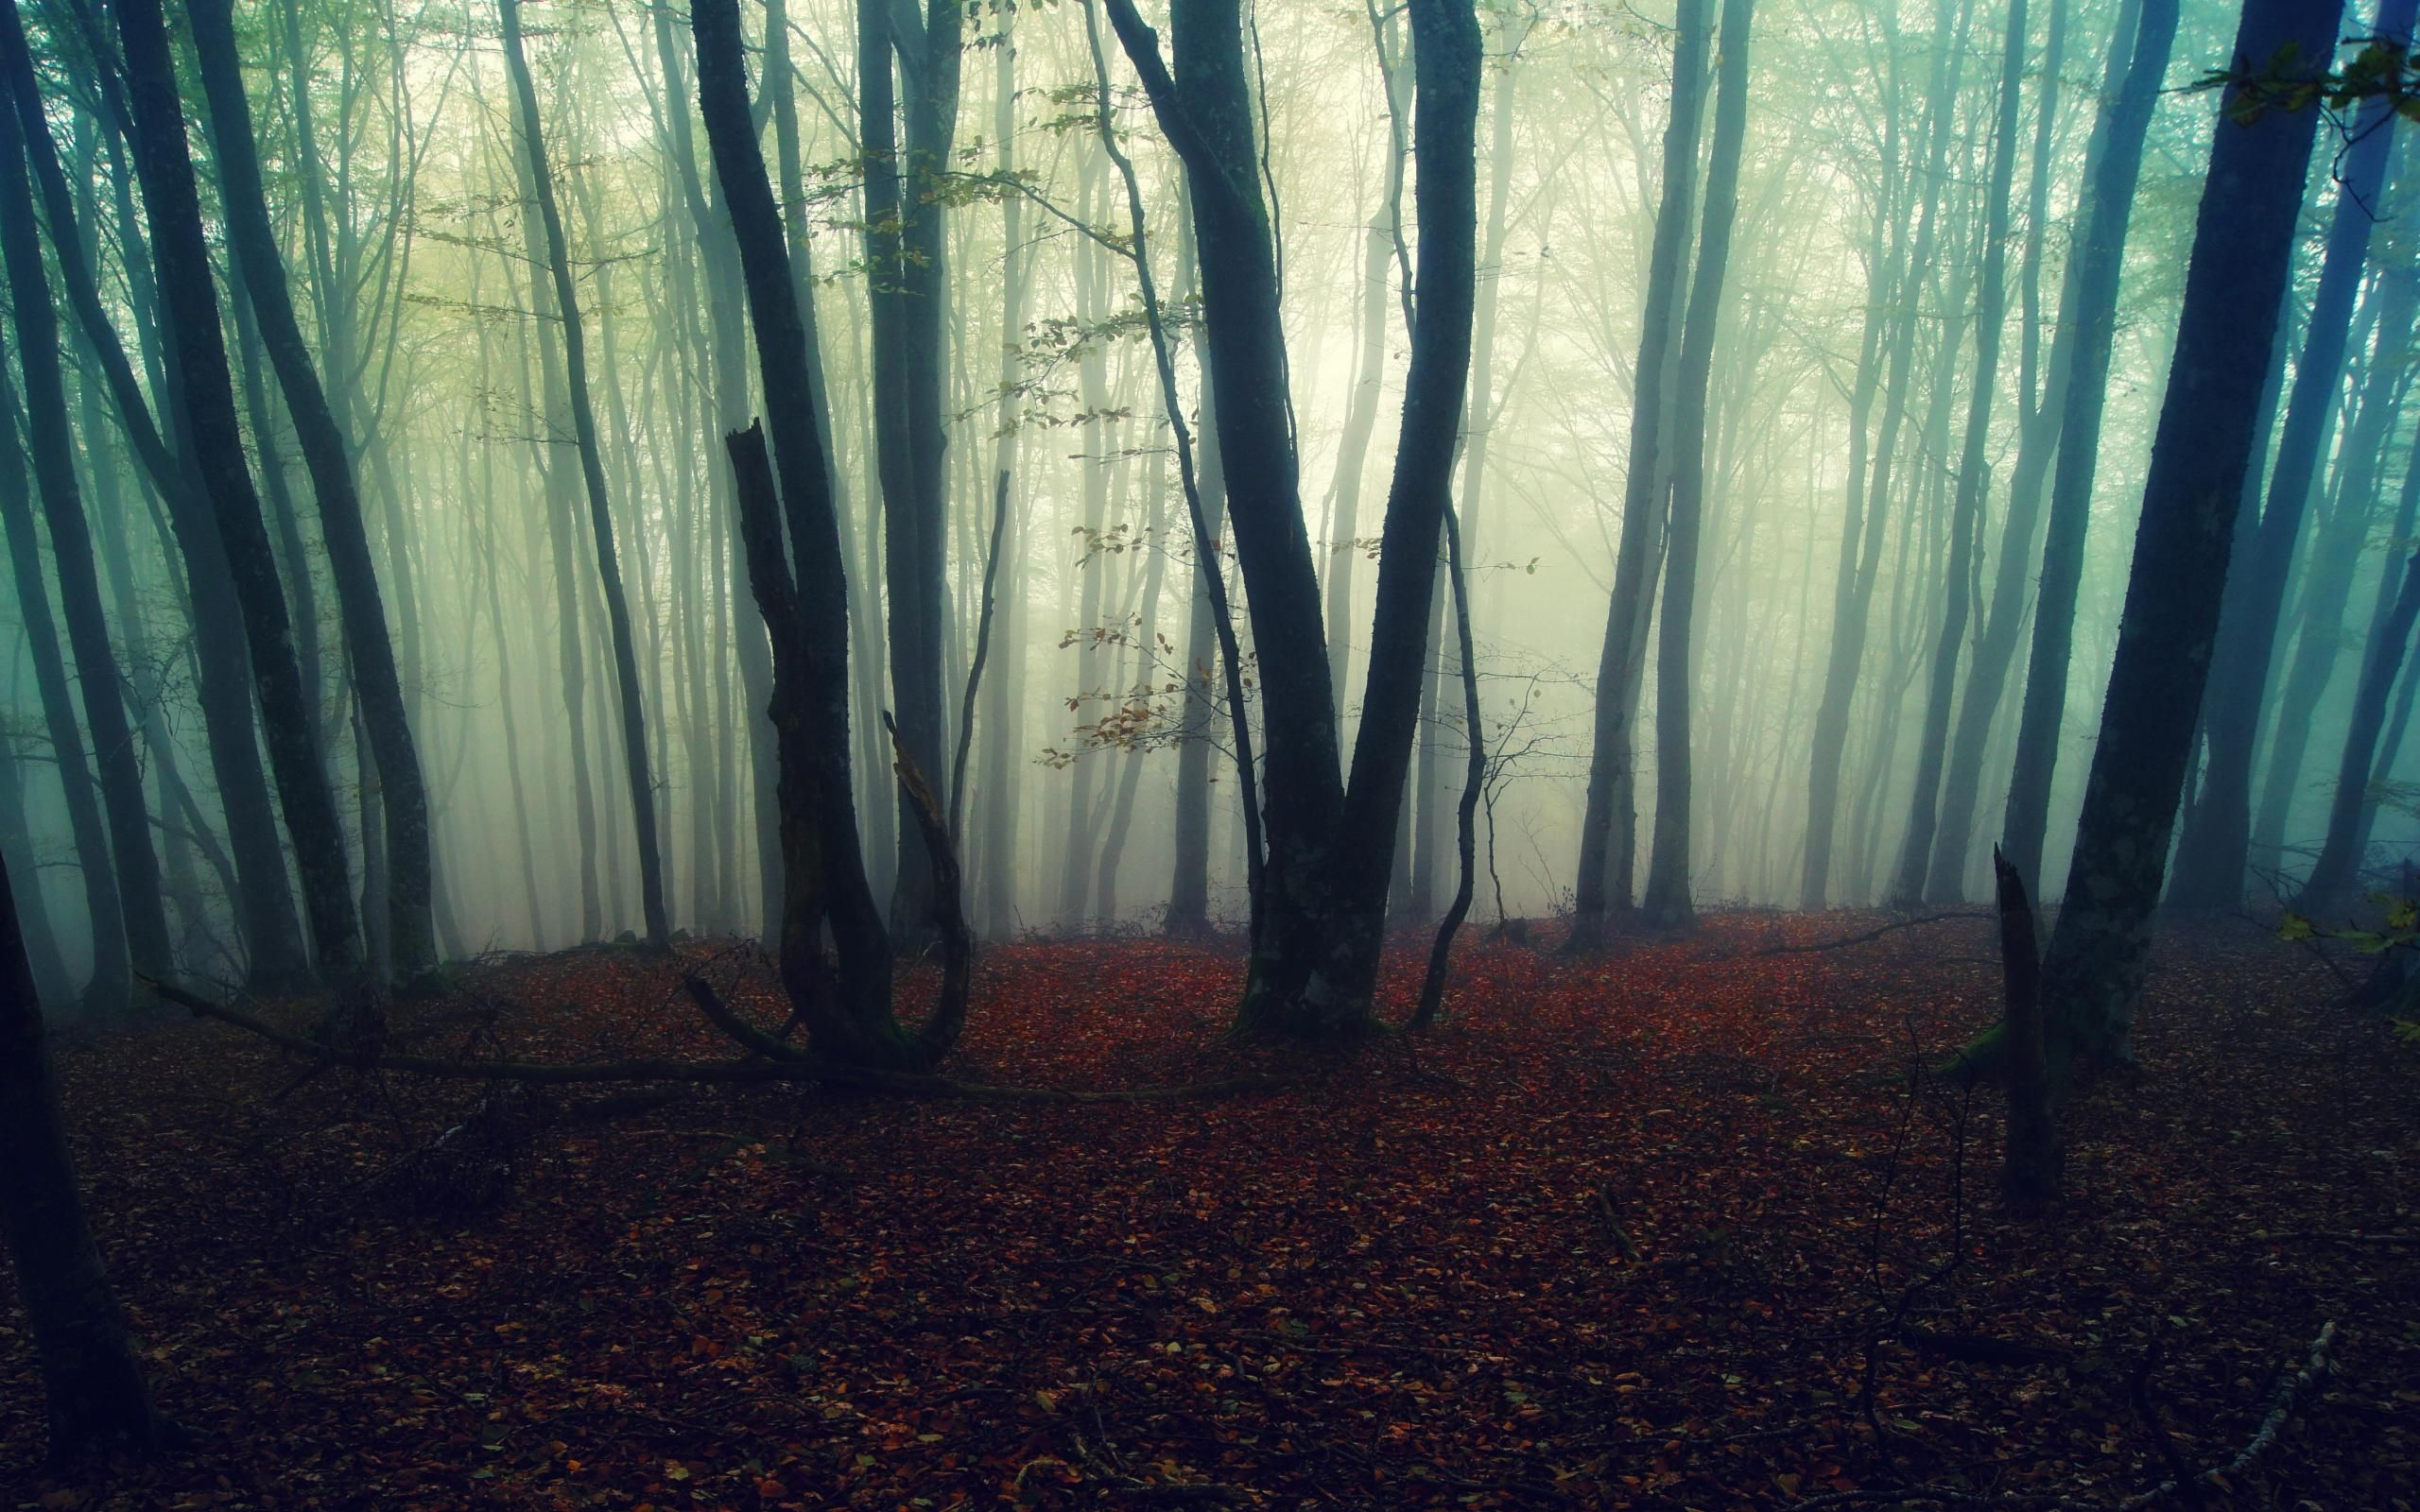 Foggy Forest Wallpaper HD Resolution #lJA | Earth | Pinterest